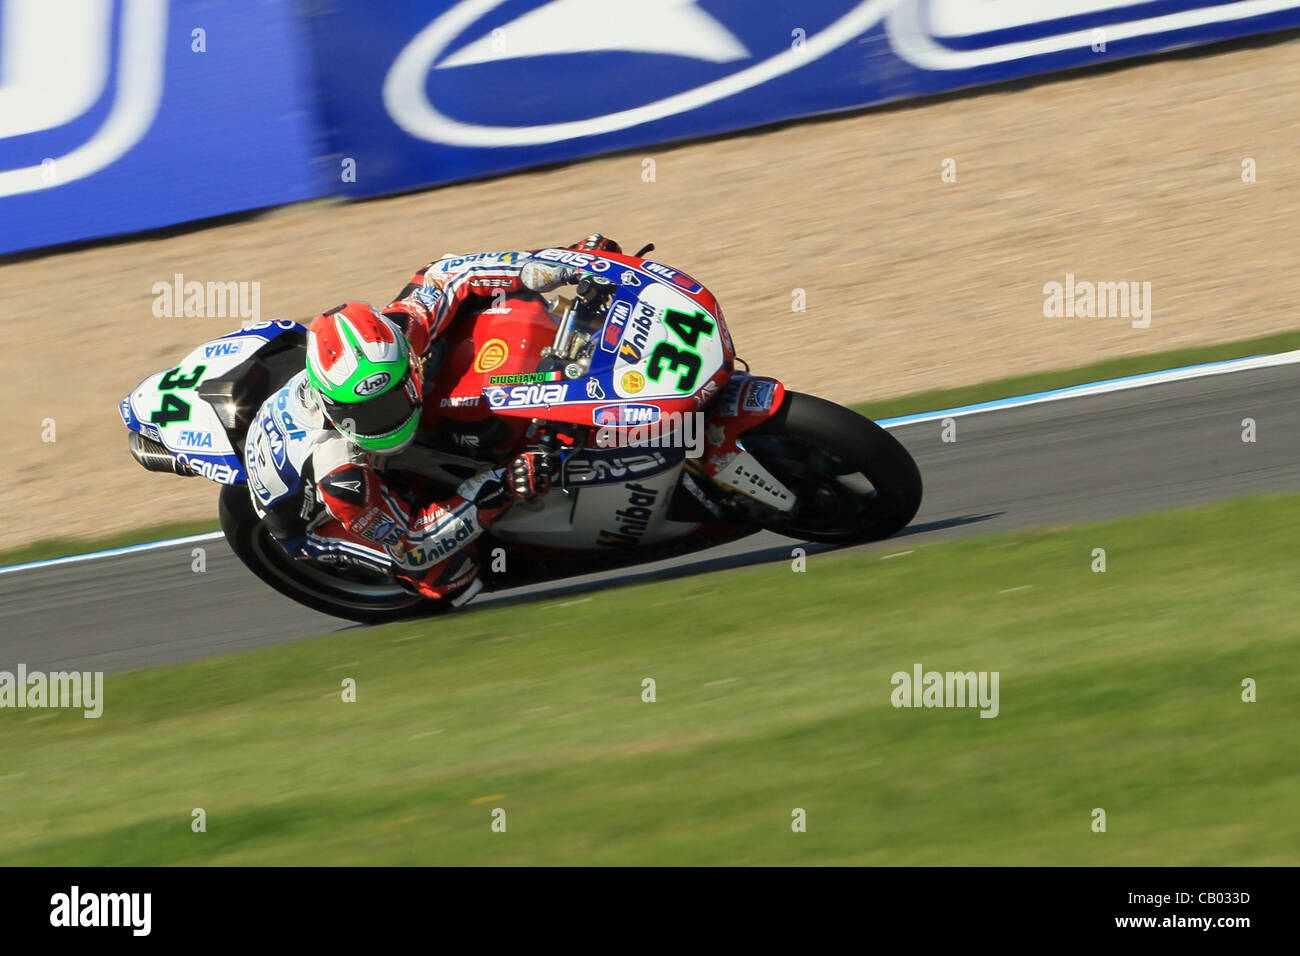 UK. 12.05.2012. Donington Park, England.  Davide Giugliano rides a Ducati 1098R for Althea Racing in the  World Stock Photo